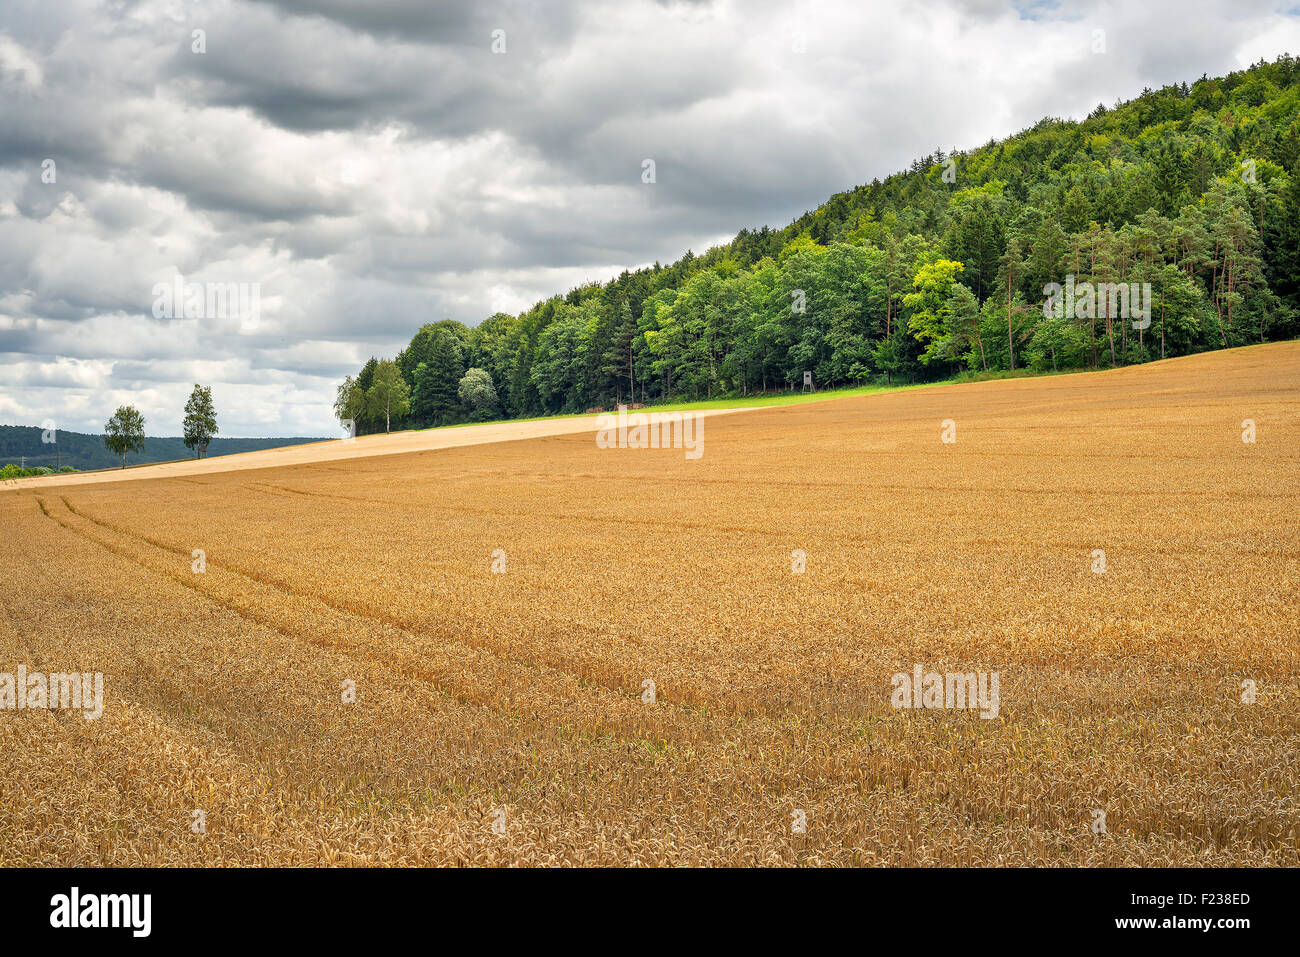 Image of a wheatfield in Franconia, Germany - Stock Image